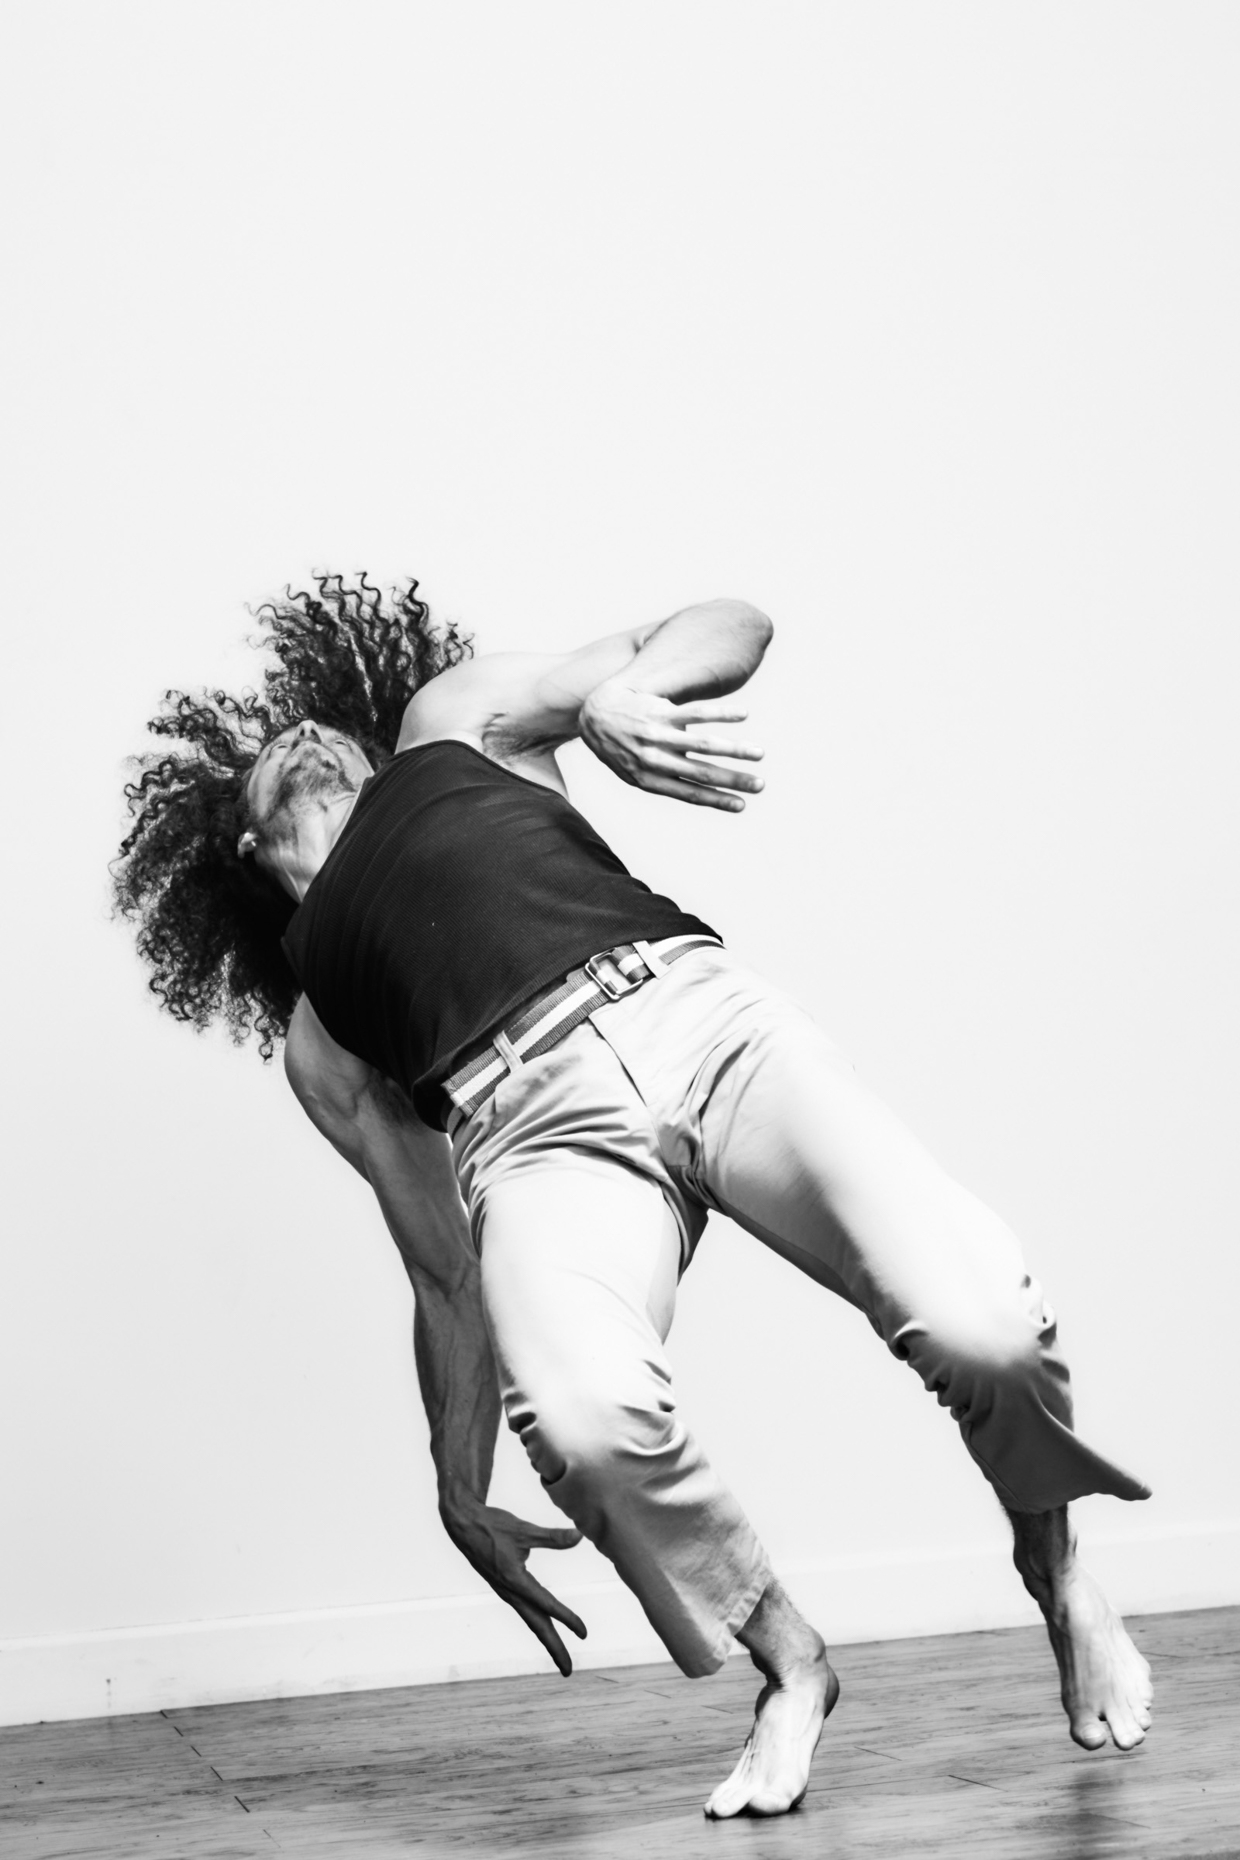 Modern dancer Michael Galen strikes a pose for dramatic dance photographer Andy Batt